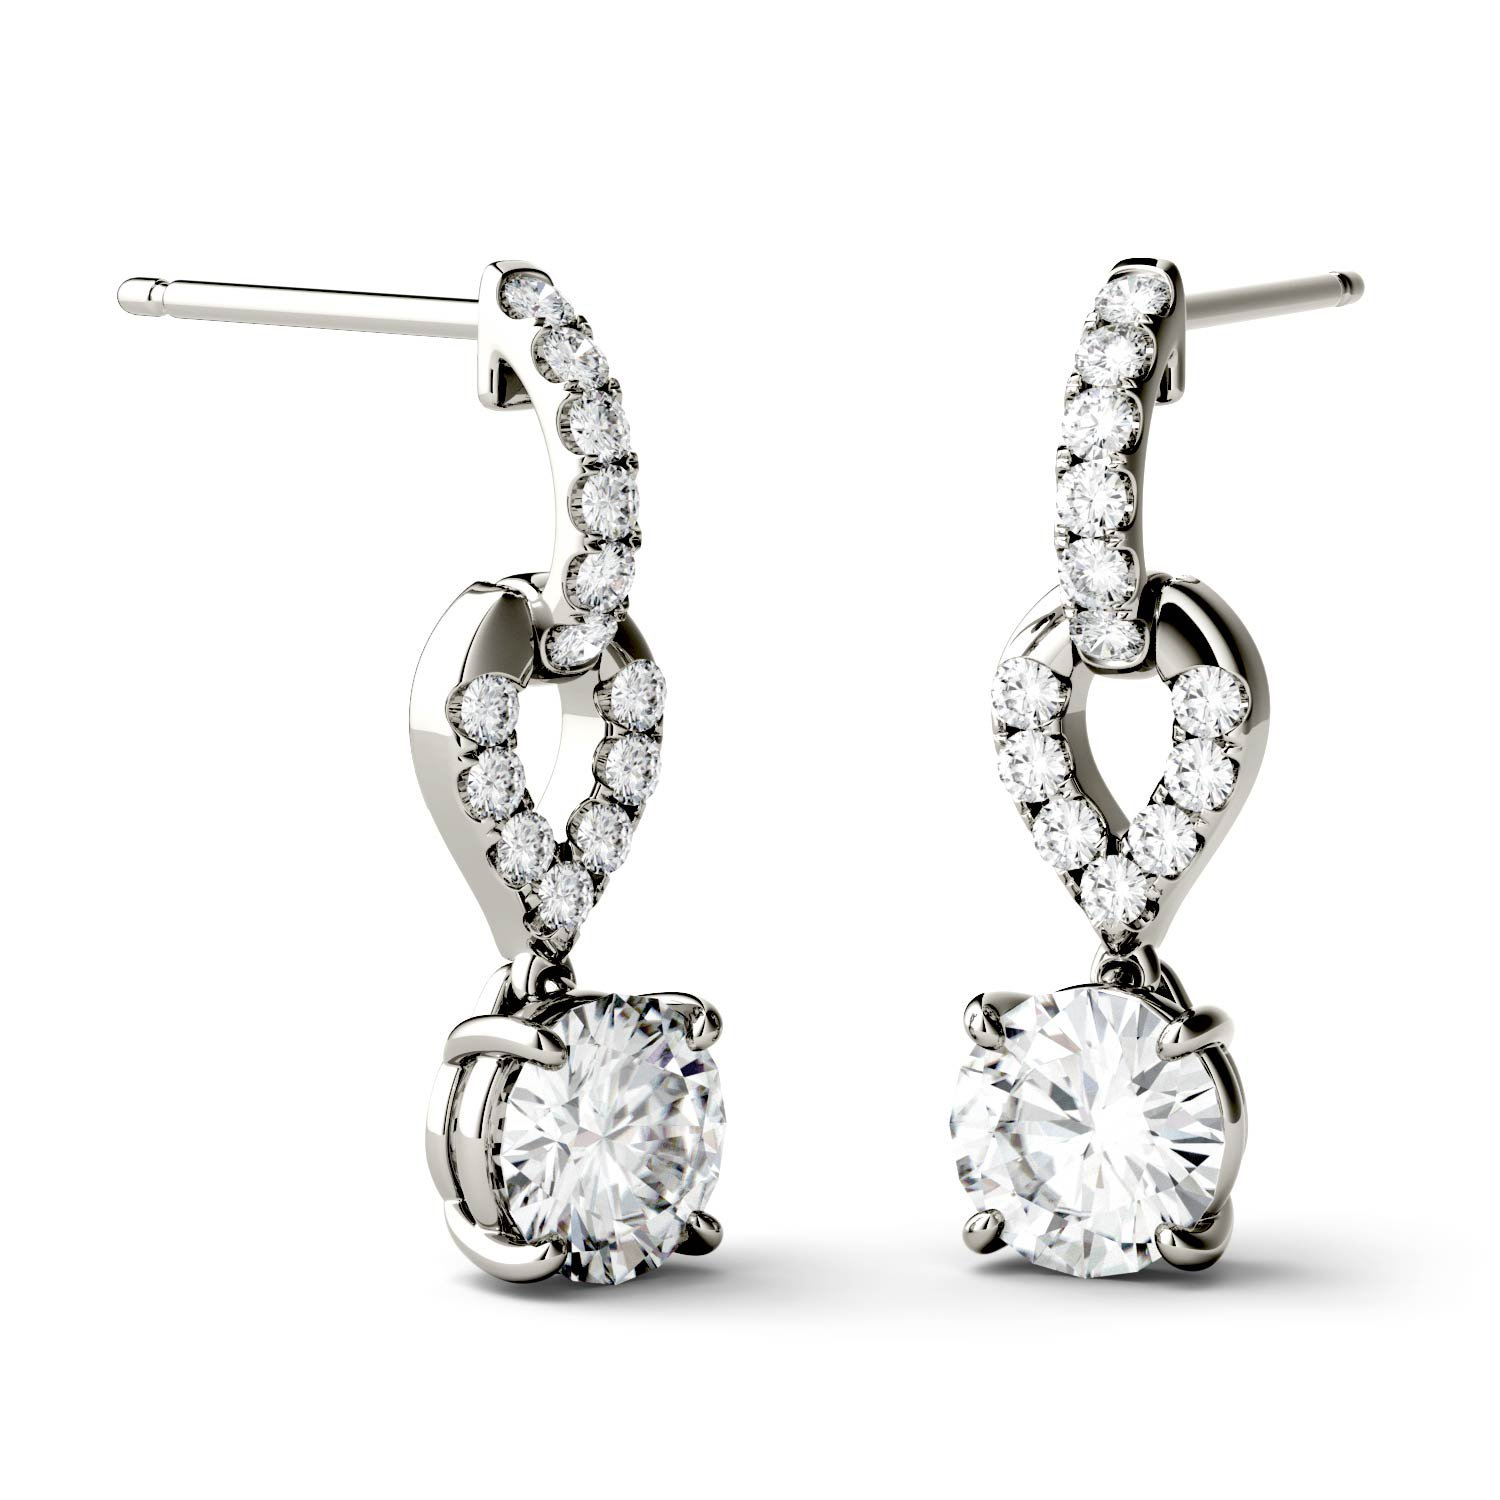 Forever Brilliant 5.0mm Round Moissanite Drop Earrings, 1.26cttw DEW by Charles Colvard